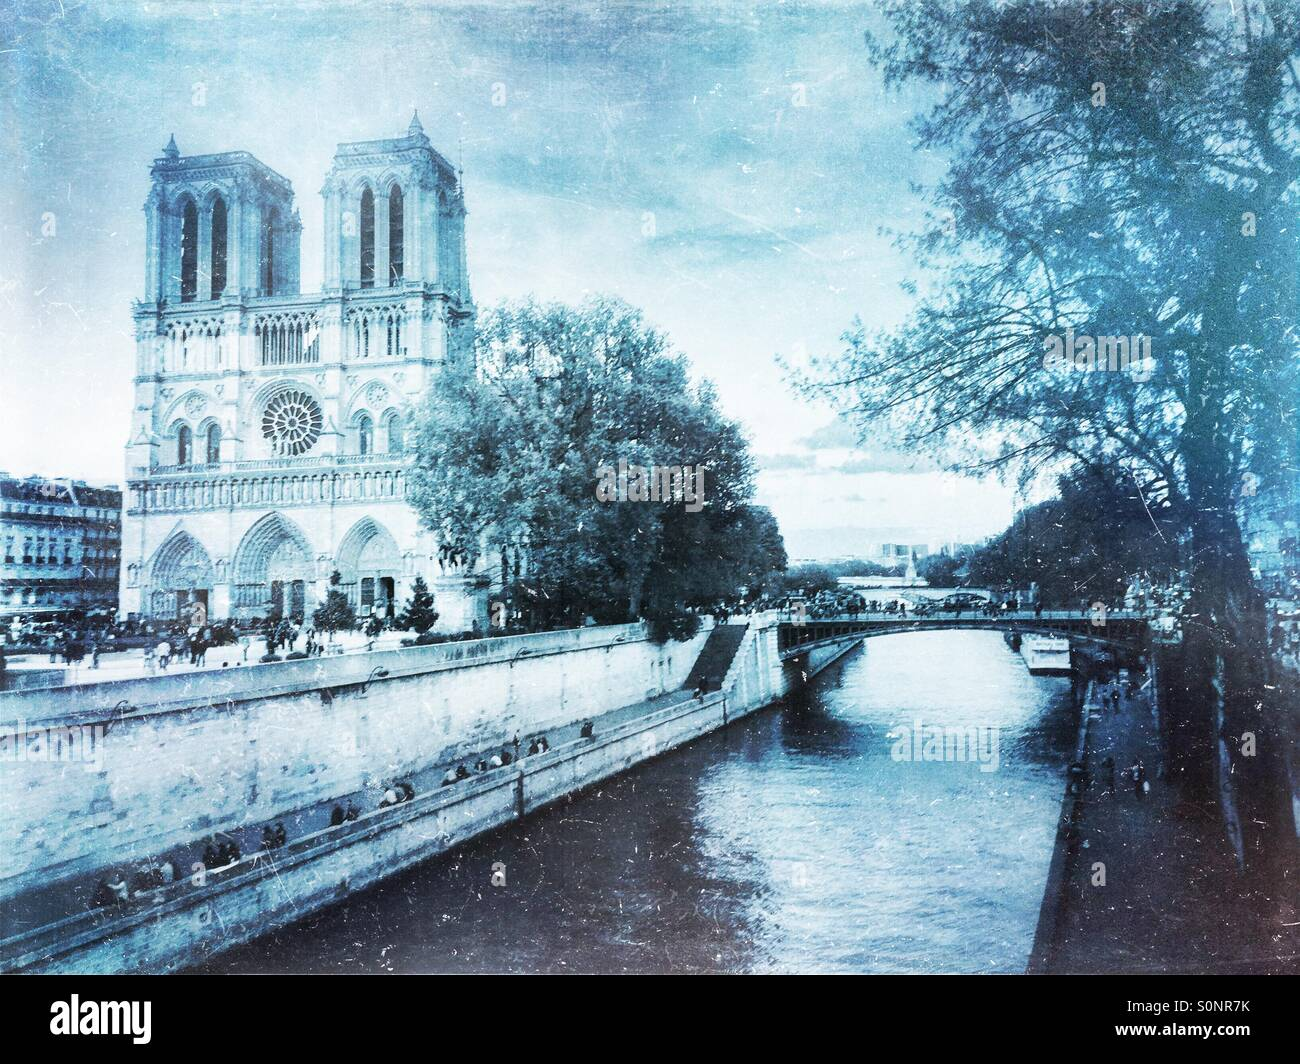 View of Notre Dame Cathedral from Petit Pont across the Seine River. Frosty, winter-inspired vintage paper texture Stock Photo